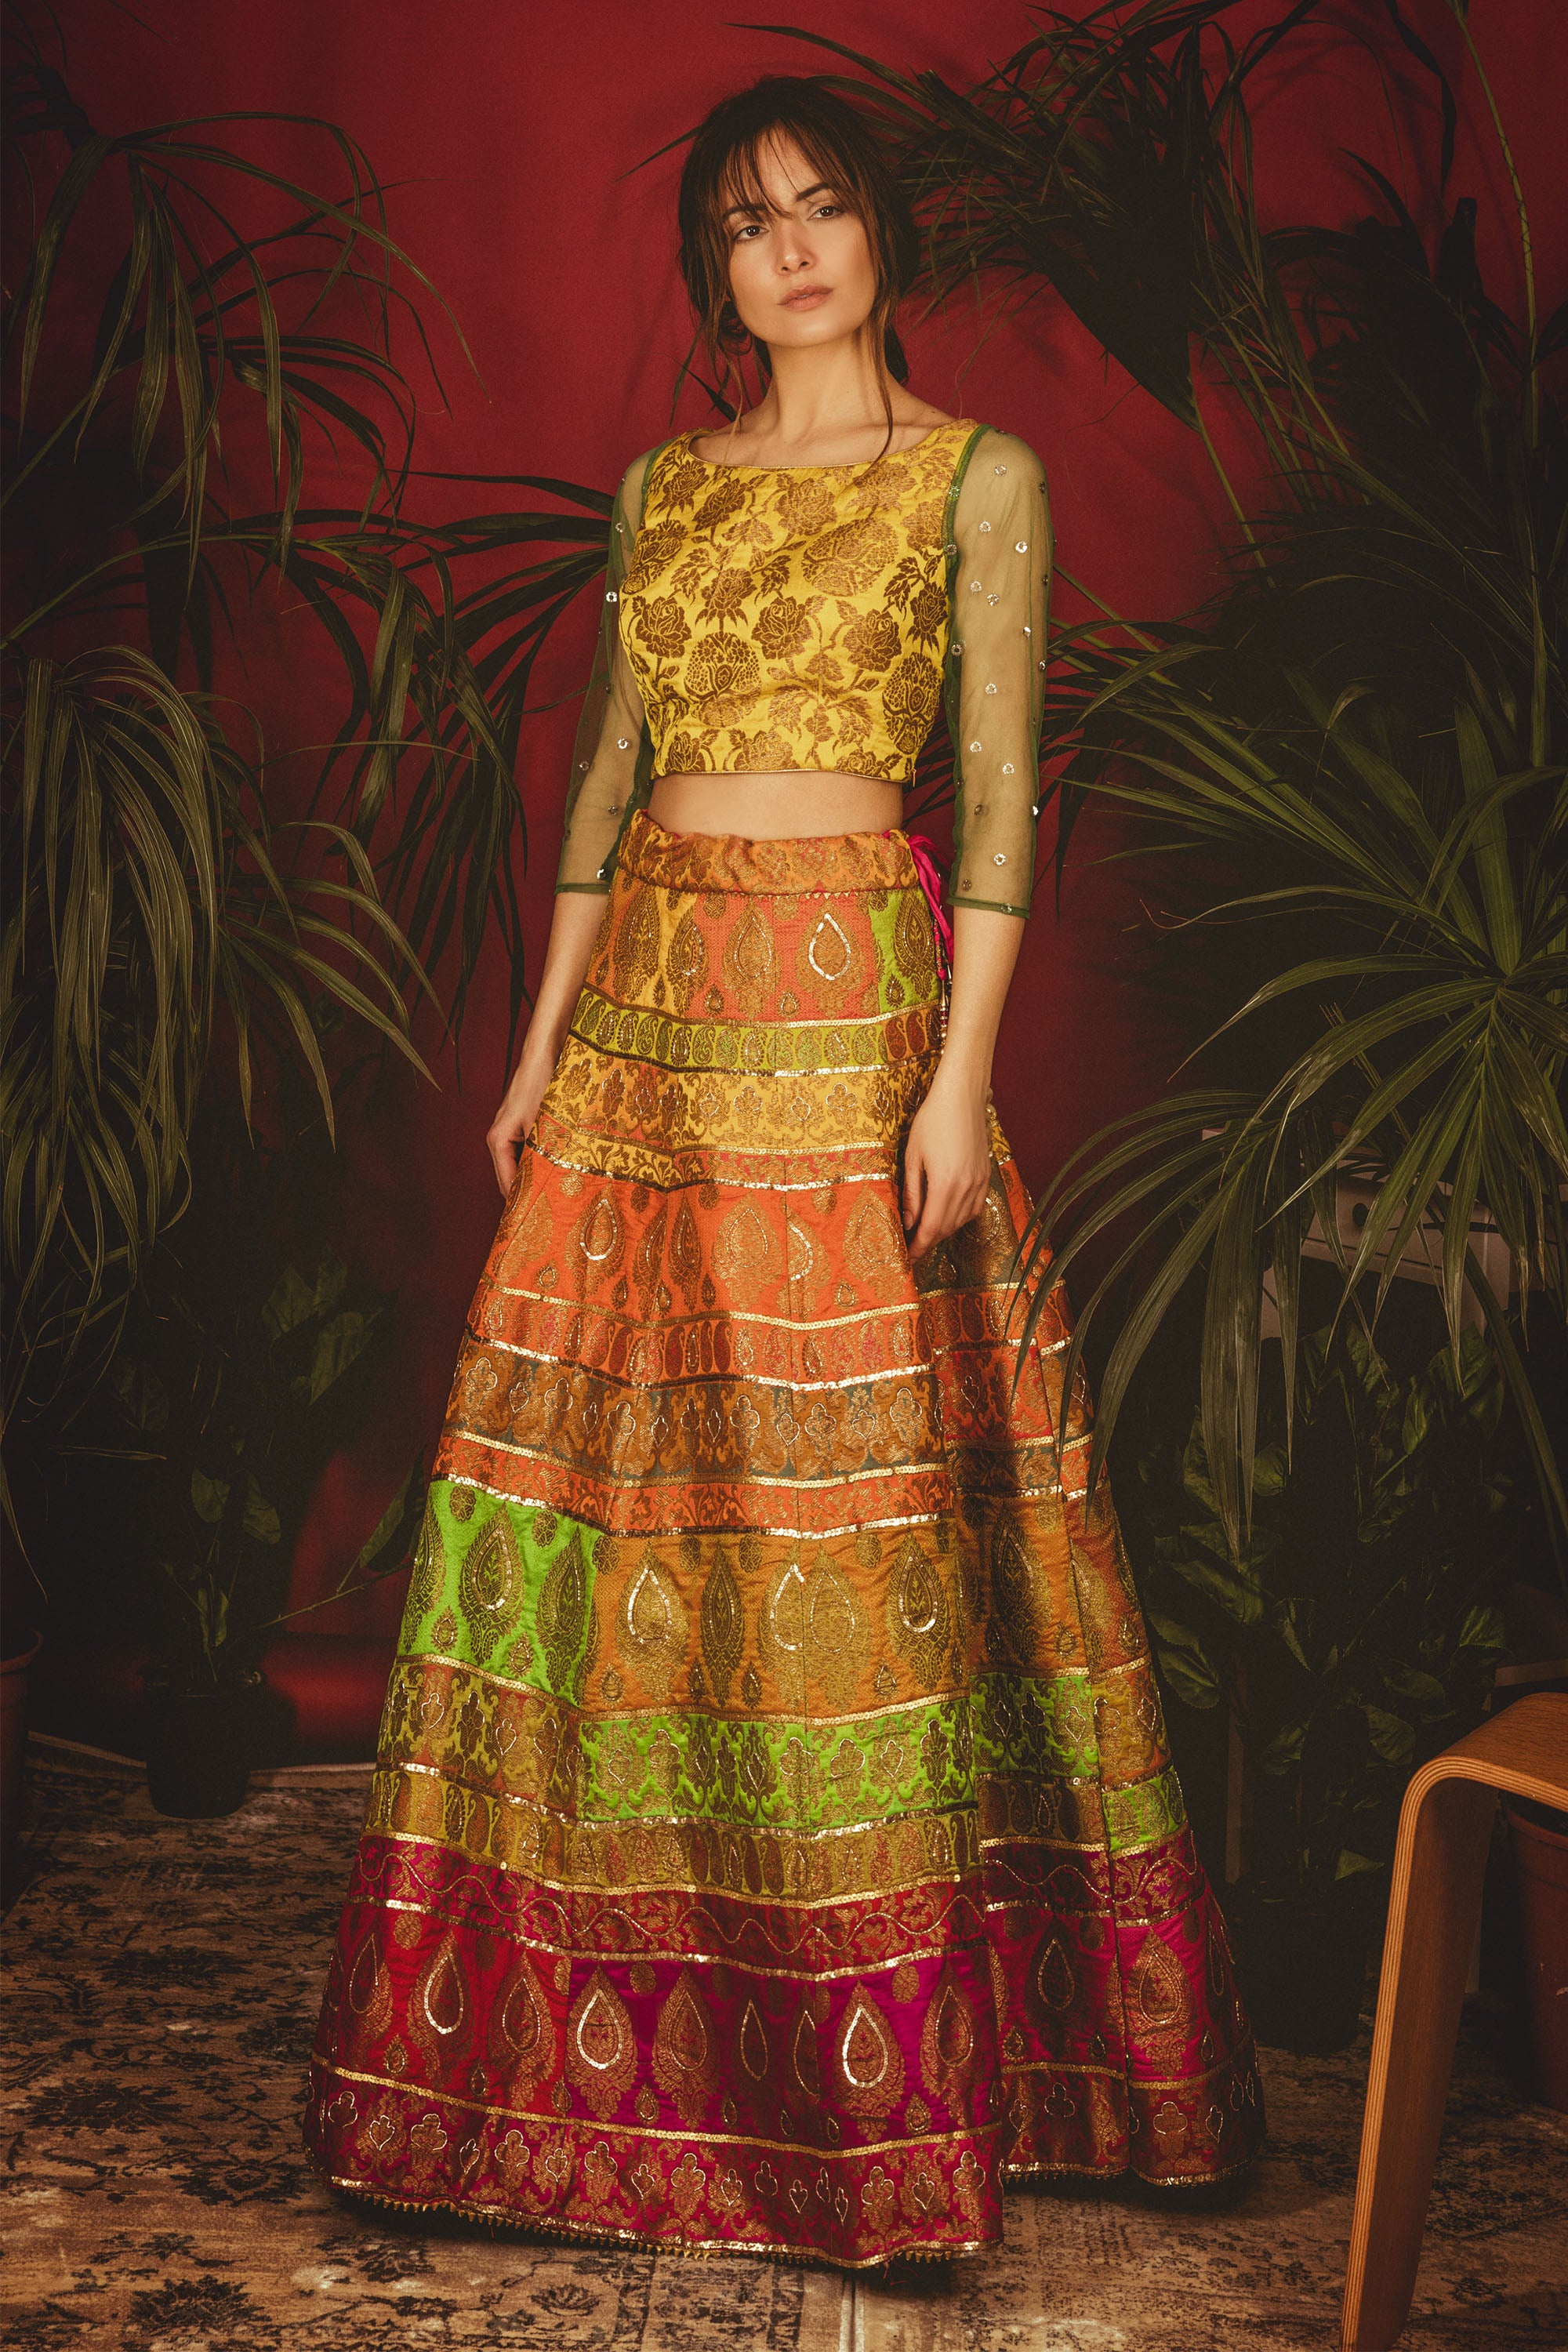 Multi-Colour La' Sunflower Lehenga FRONT